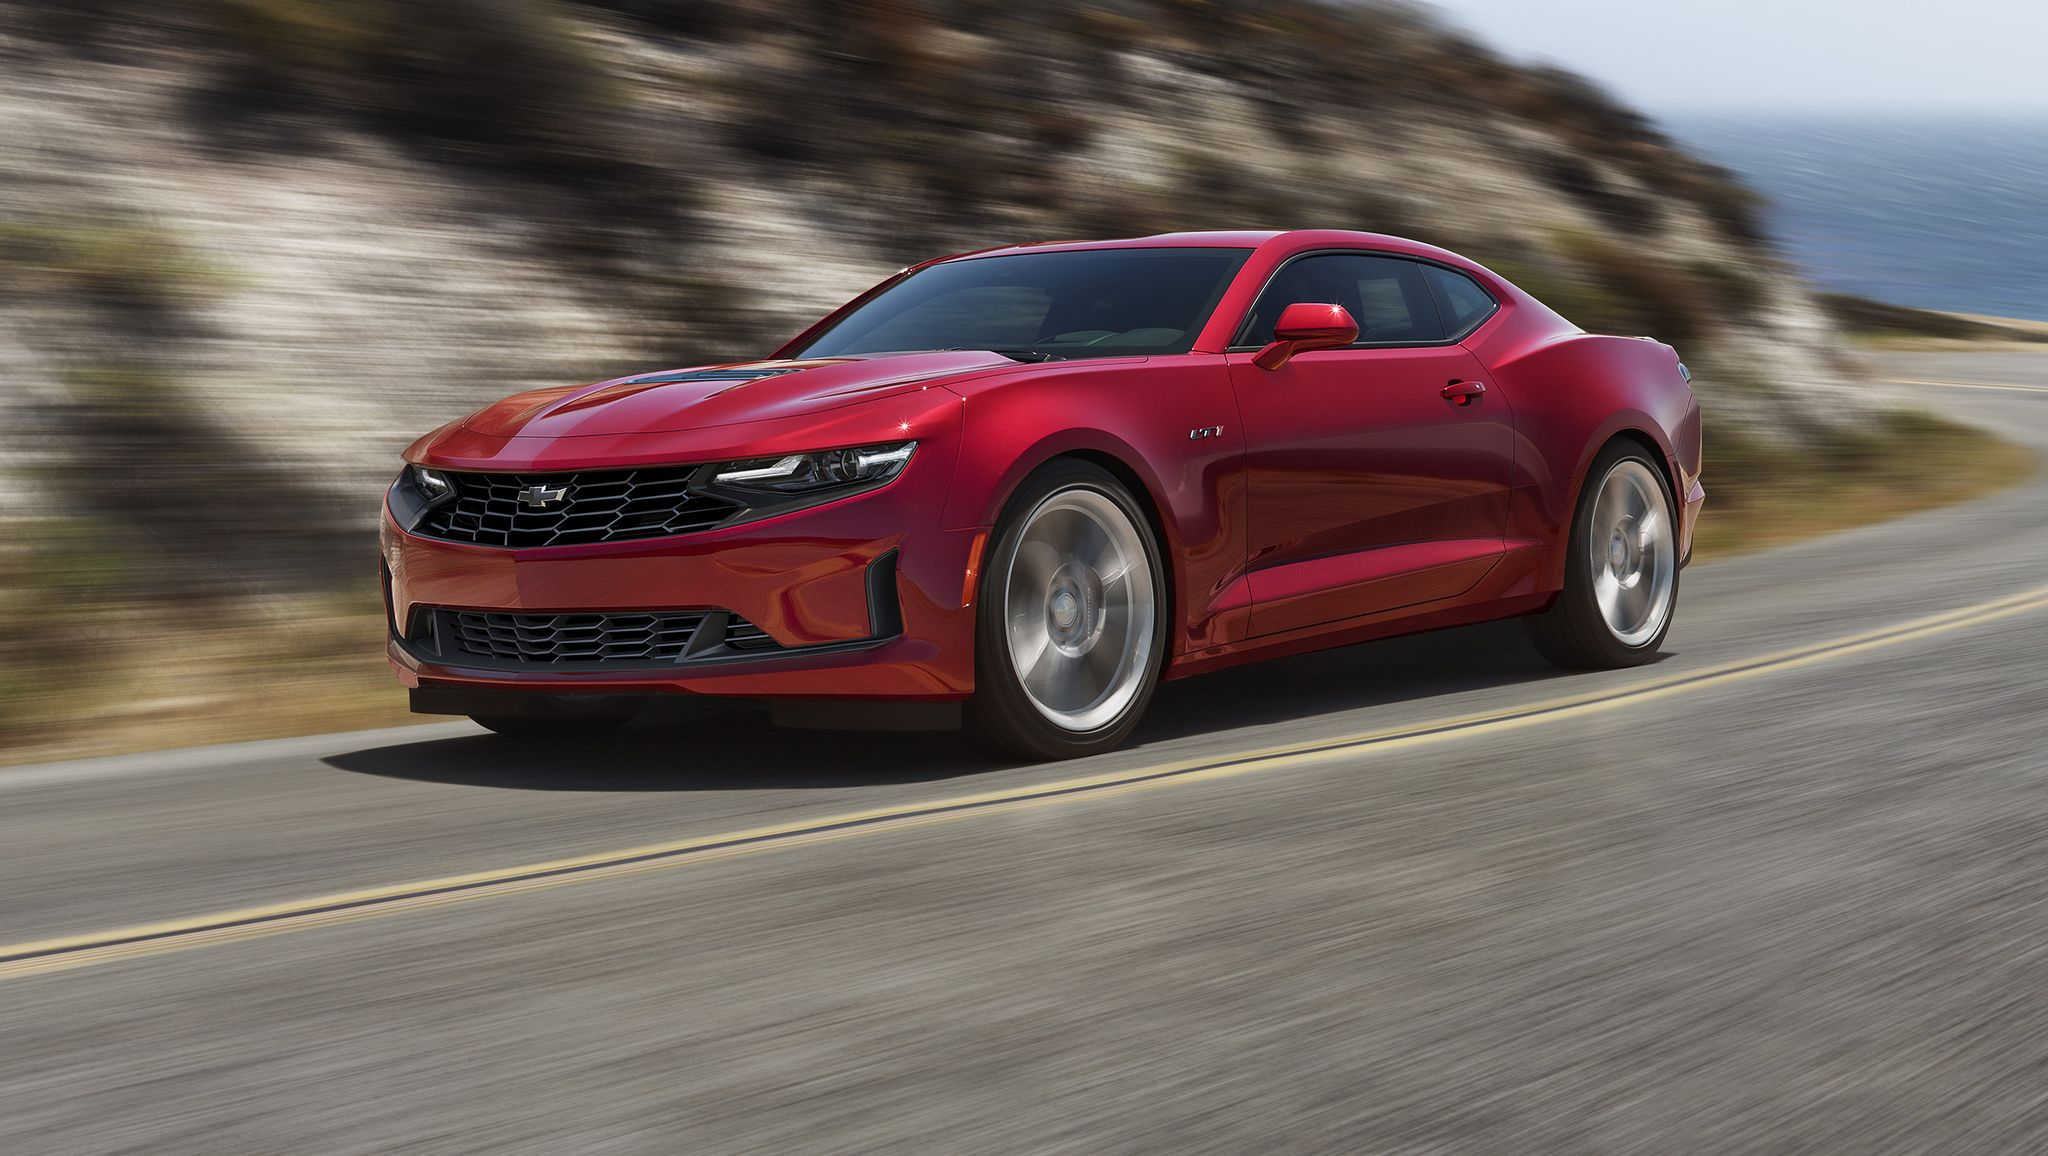 2021 The Camaro Ss Review and Release date